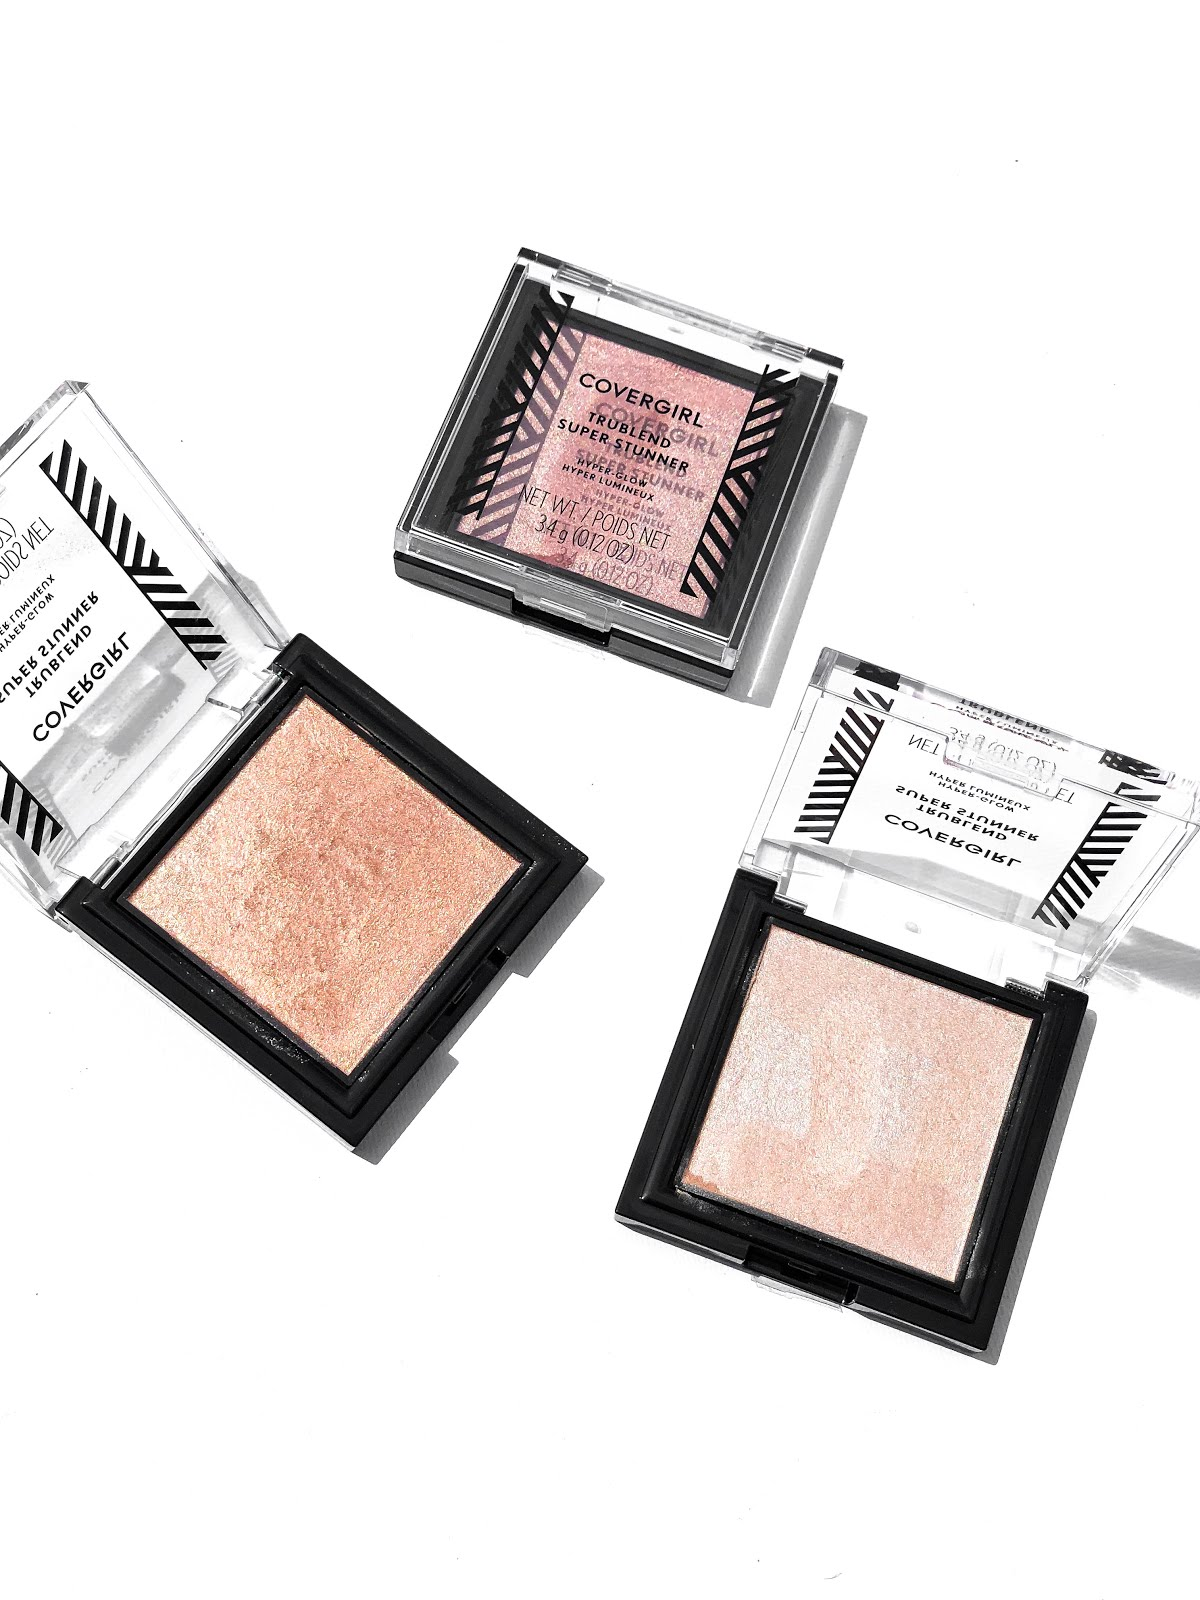 Covergirl-TrueBlend-Super-Stunner-Hyper-Glow-Mono-Highlighters-Vivi-Brizuela